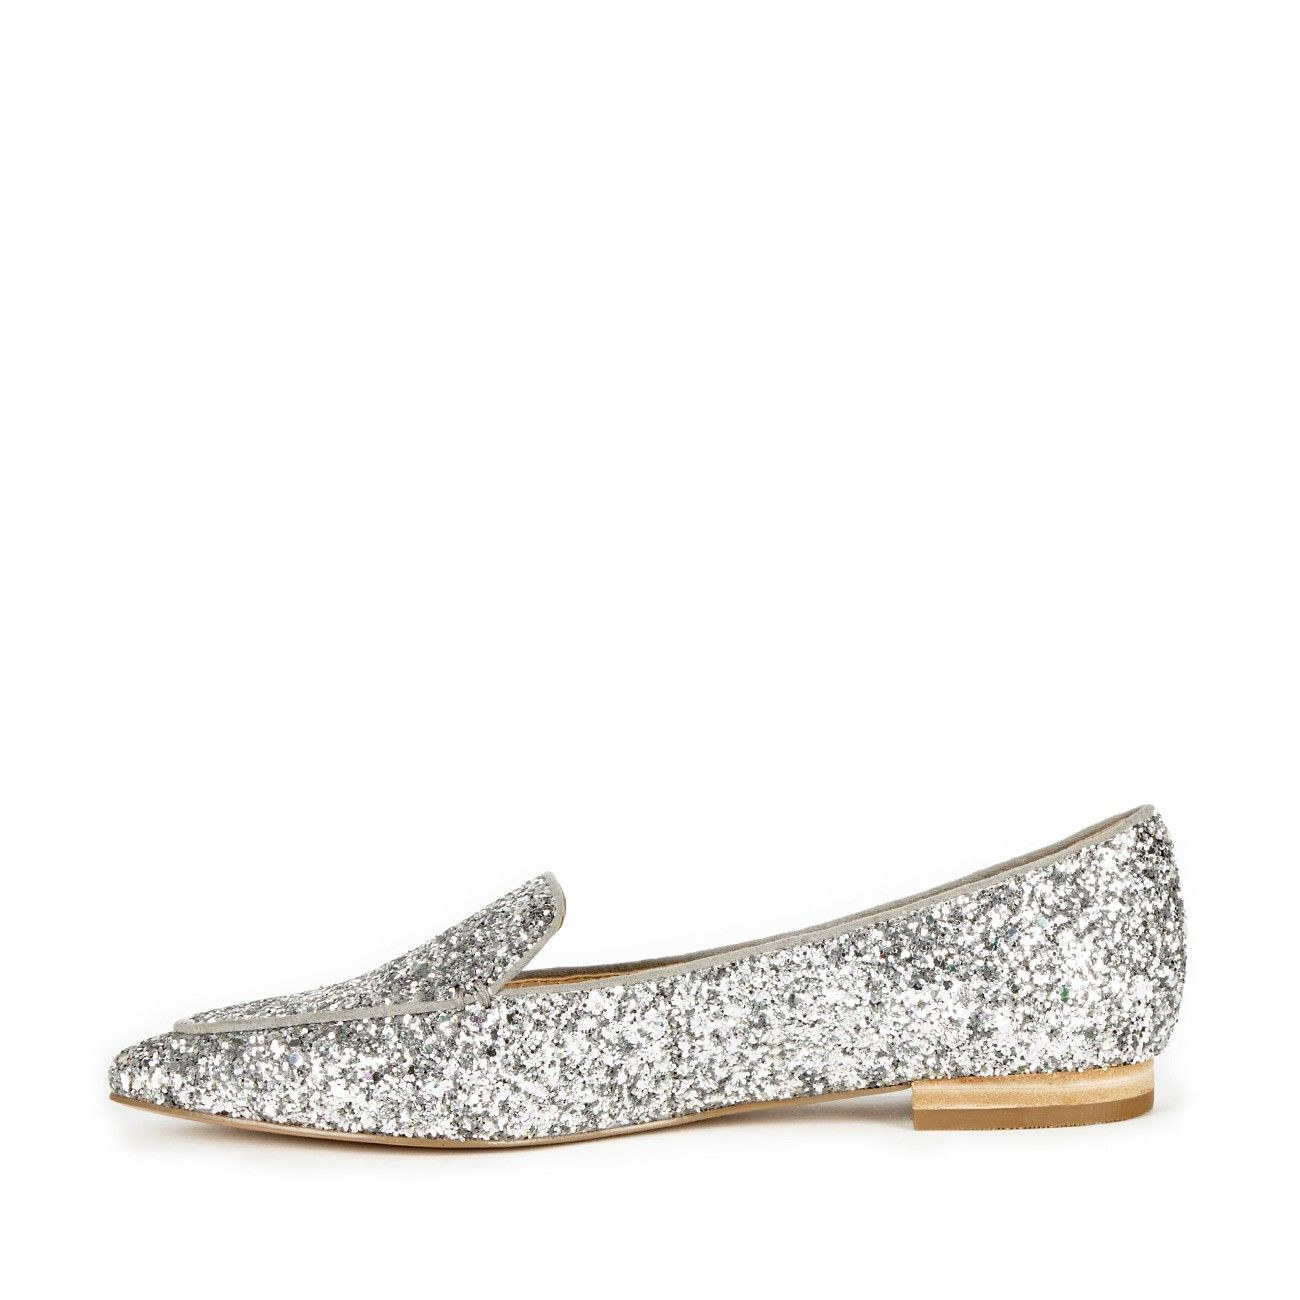 Sole Shoes At Society Prices Affordable Surprisingly Women's 00x6wnA